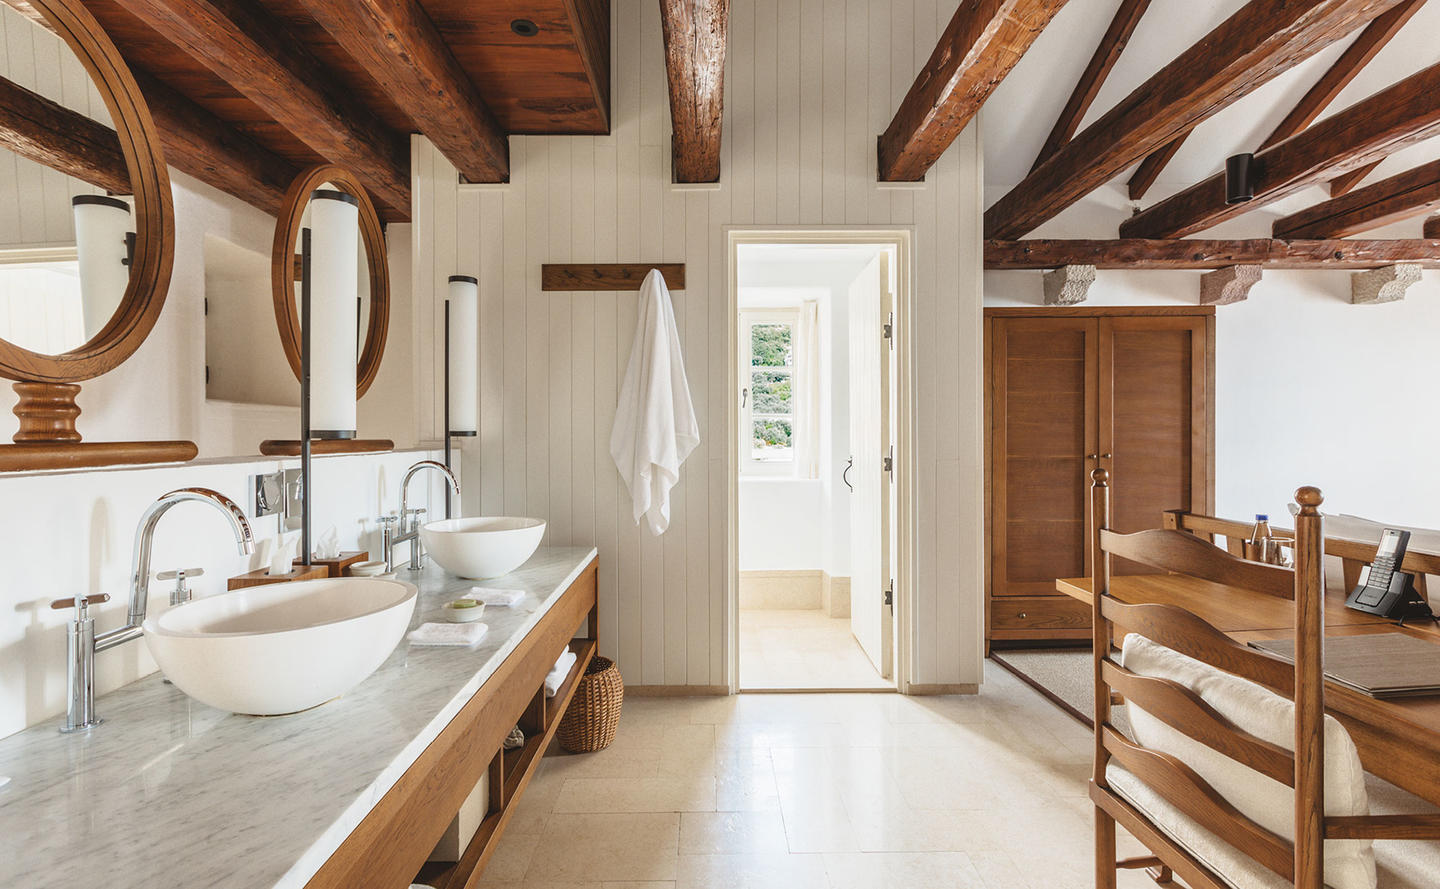 Bathroom Area, Three Bedroom Village Cottage, Aman Sveti Stefan, Montenegro